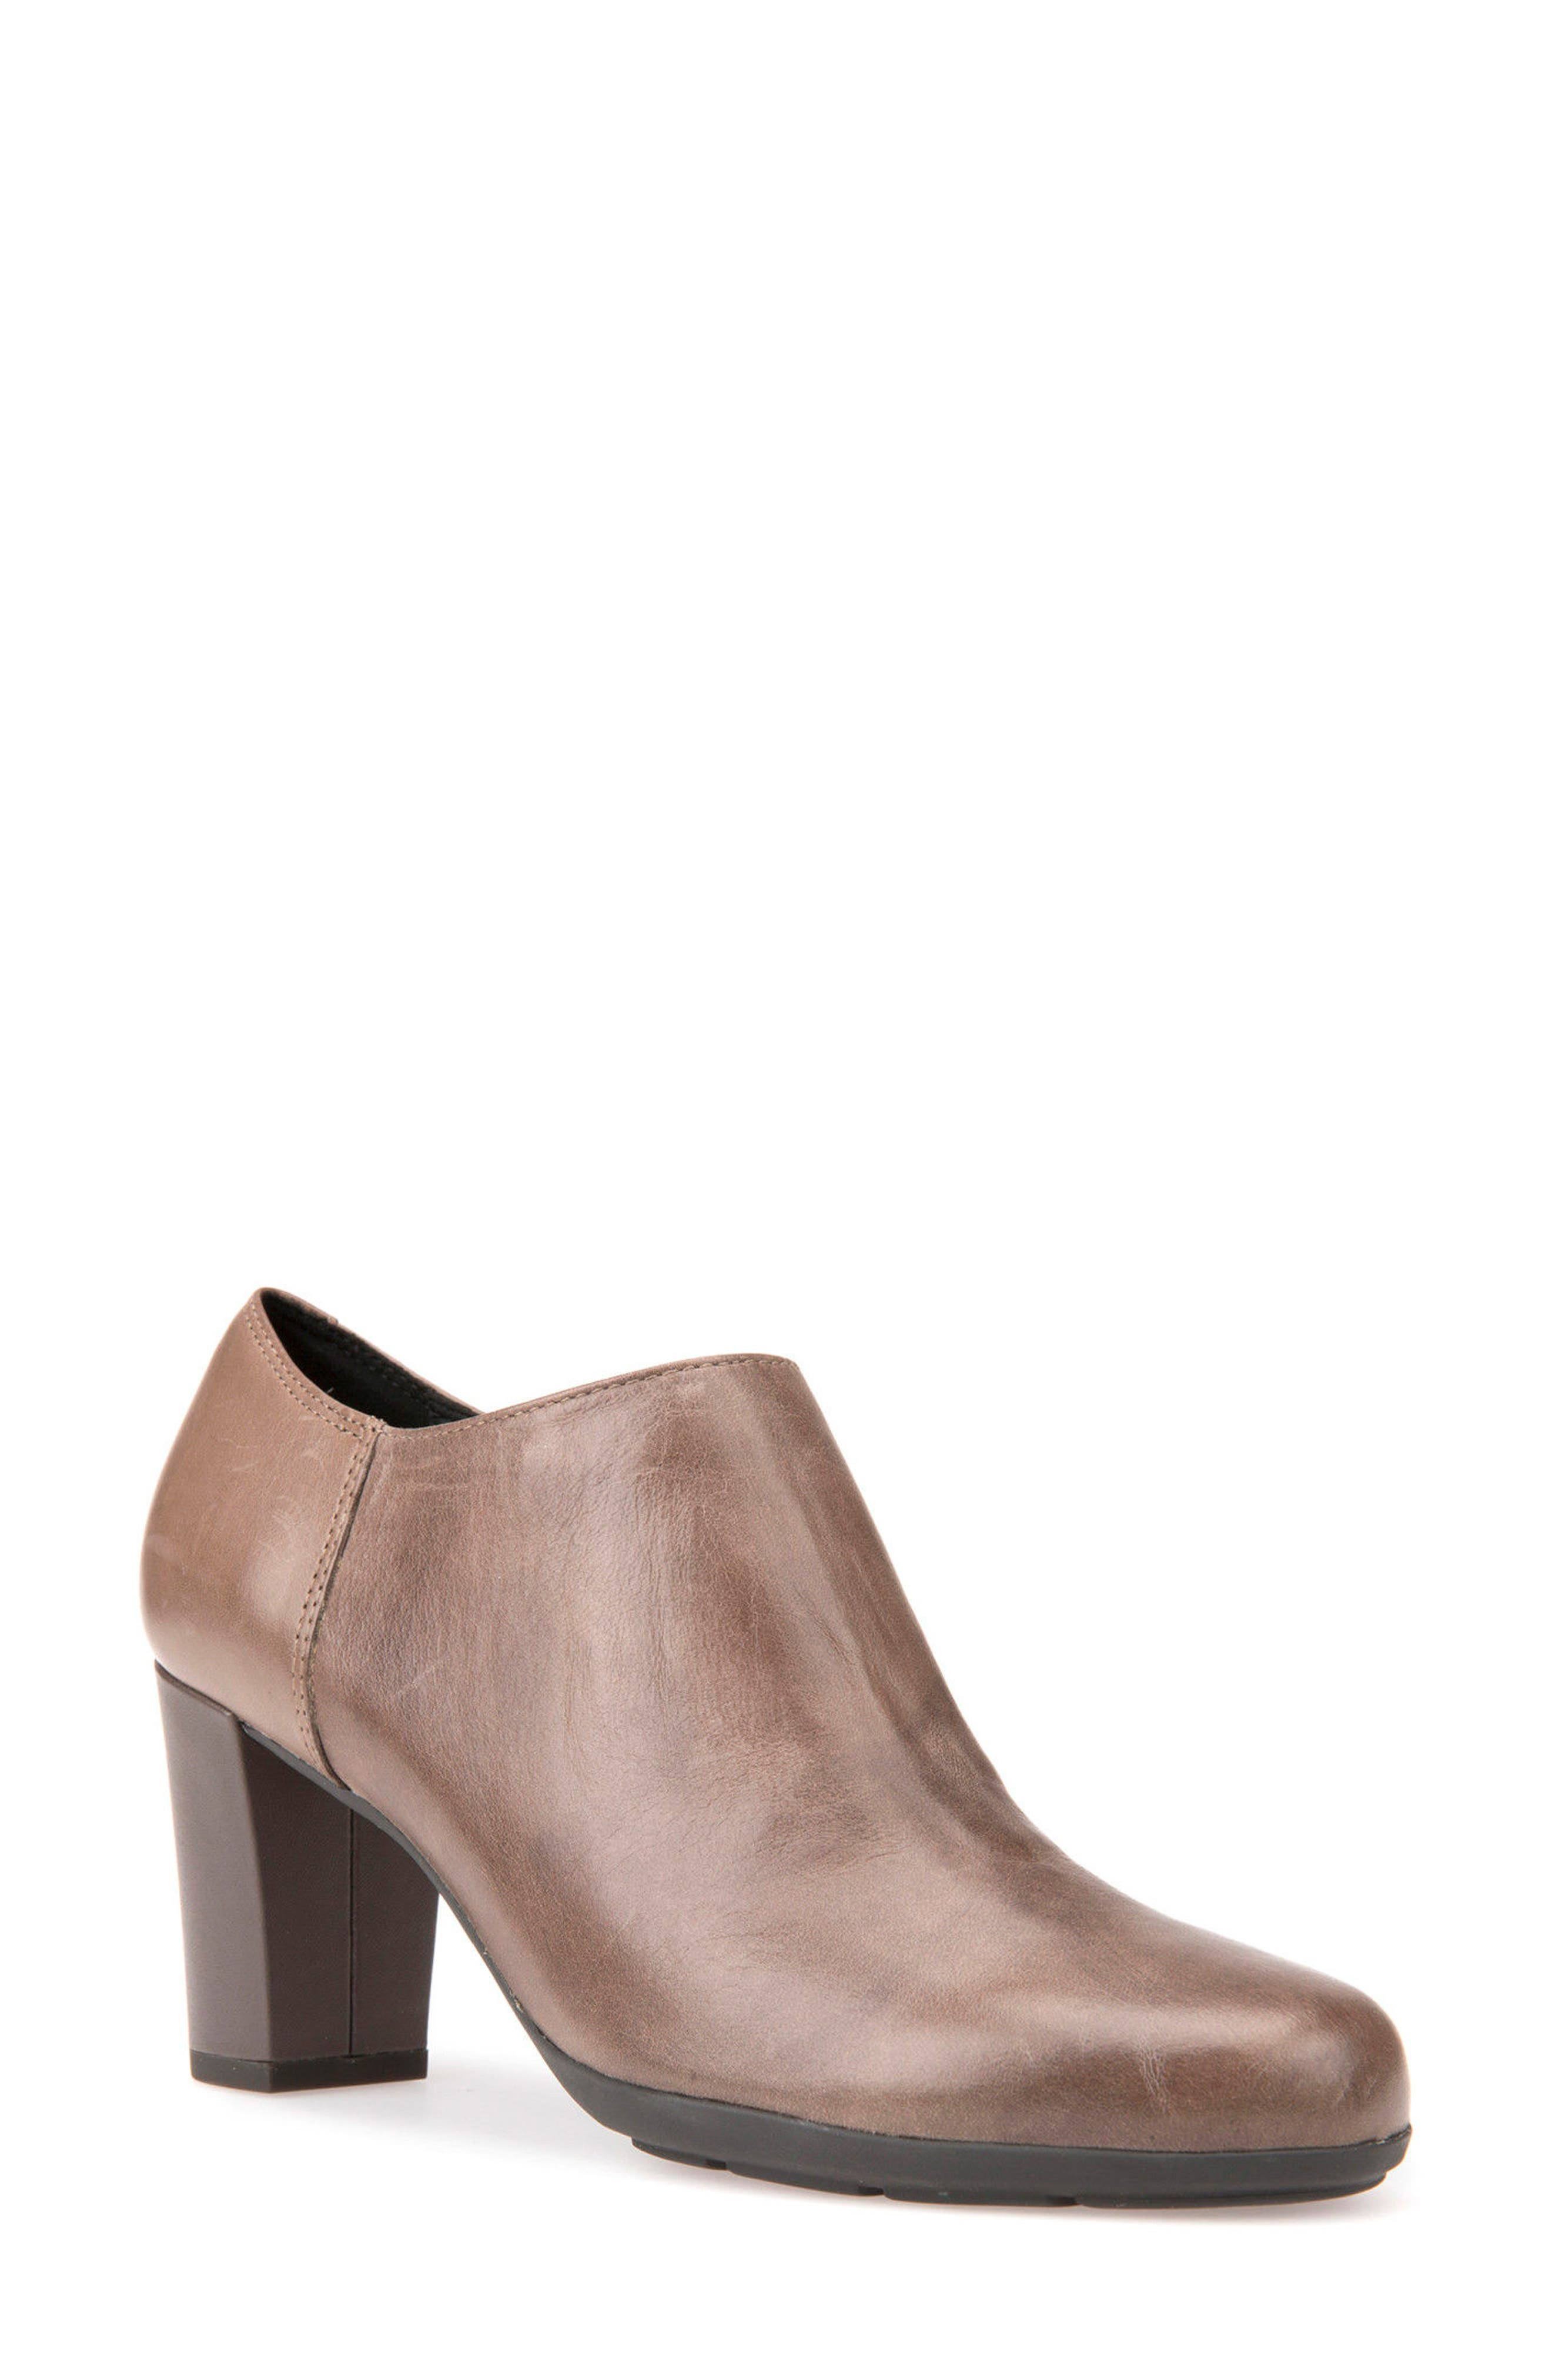 Annya Bootie,                             Main thumbnail 1, color,                             TAUPE LEATHER